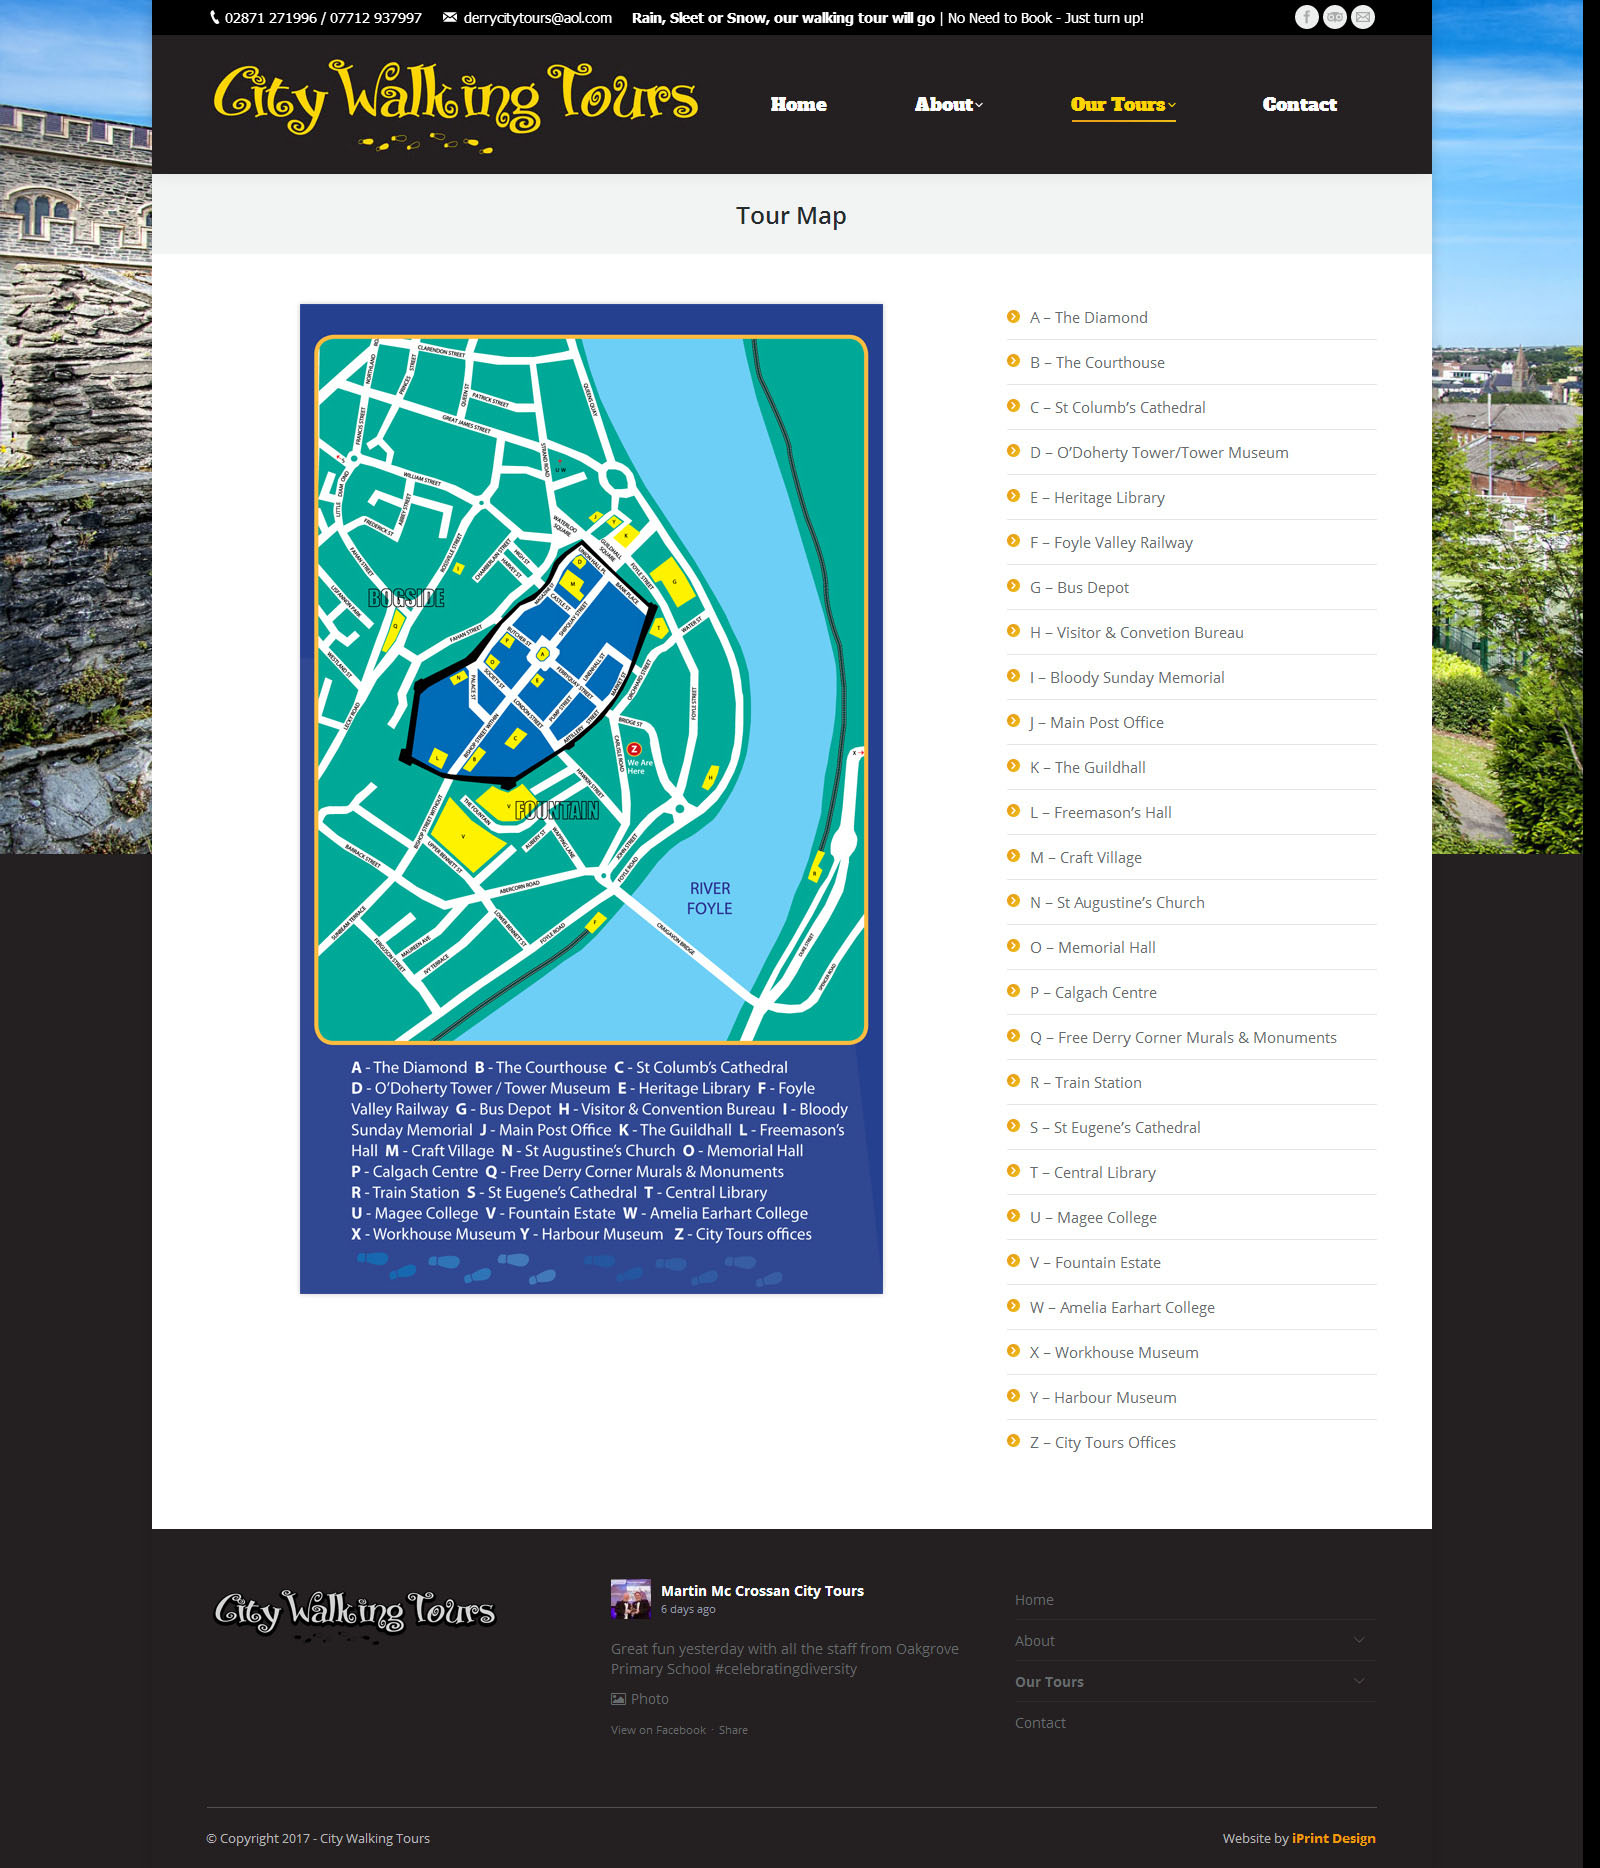 City Walking Tours - Website Sample Page 2